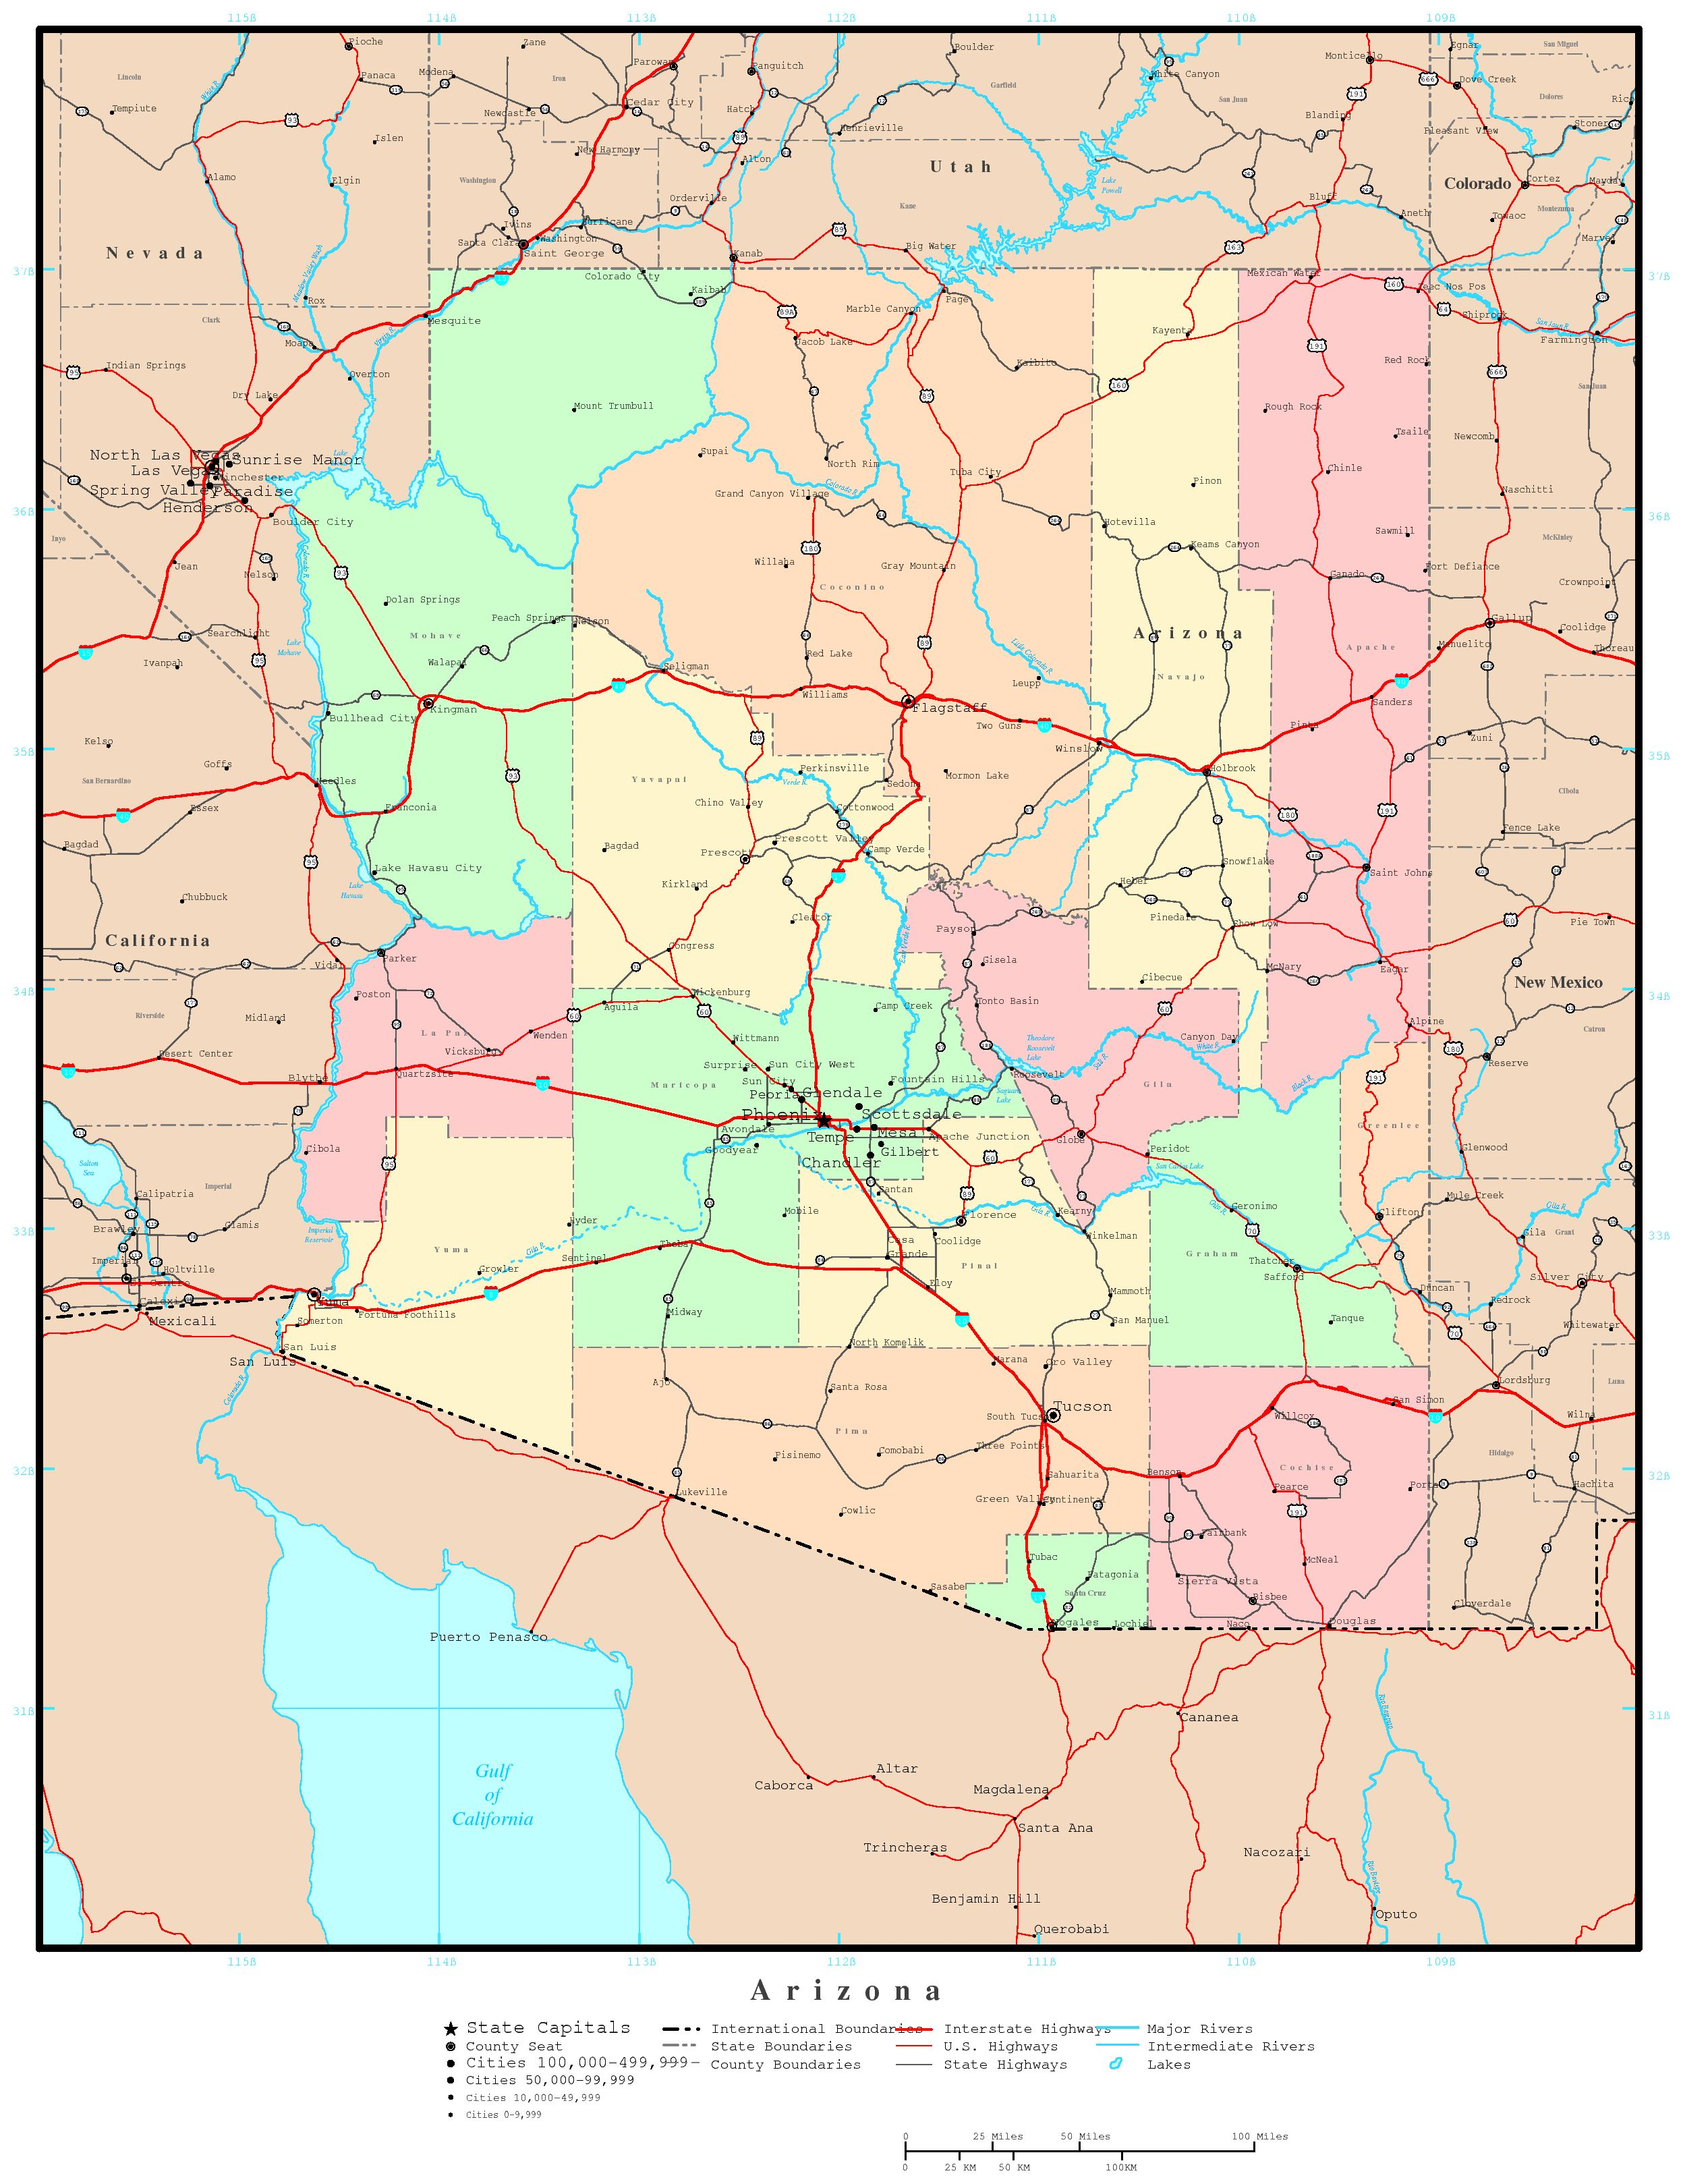 Arizona Political Map - Road map of arizona